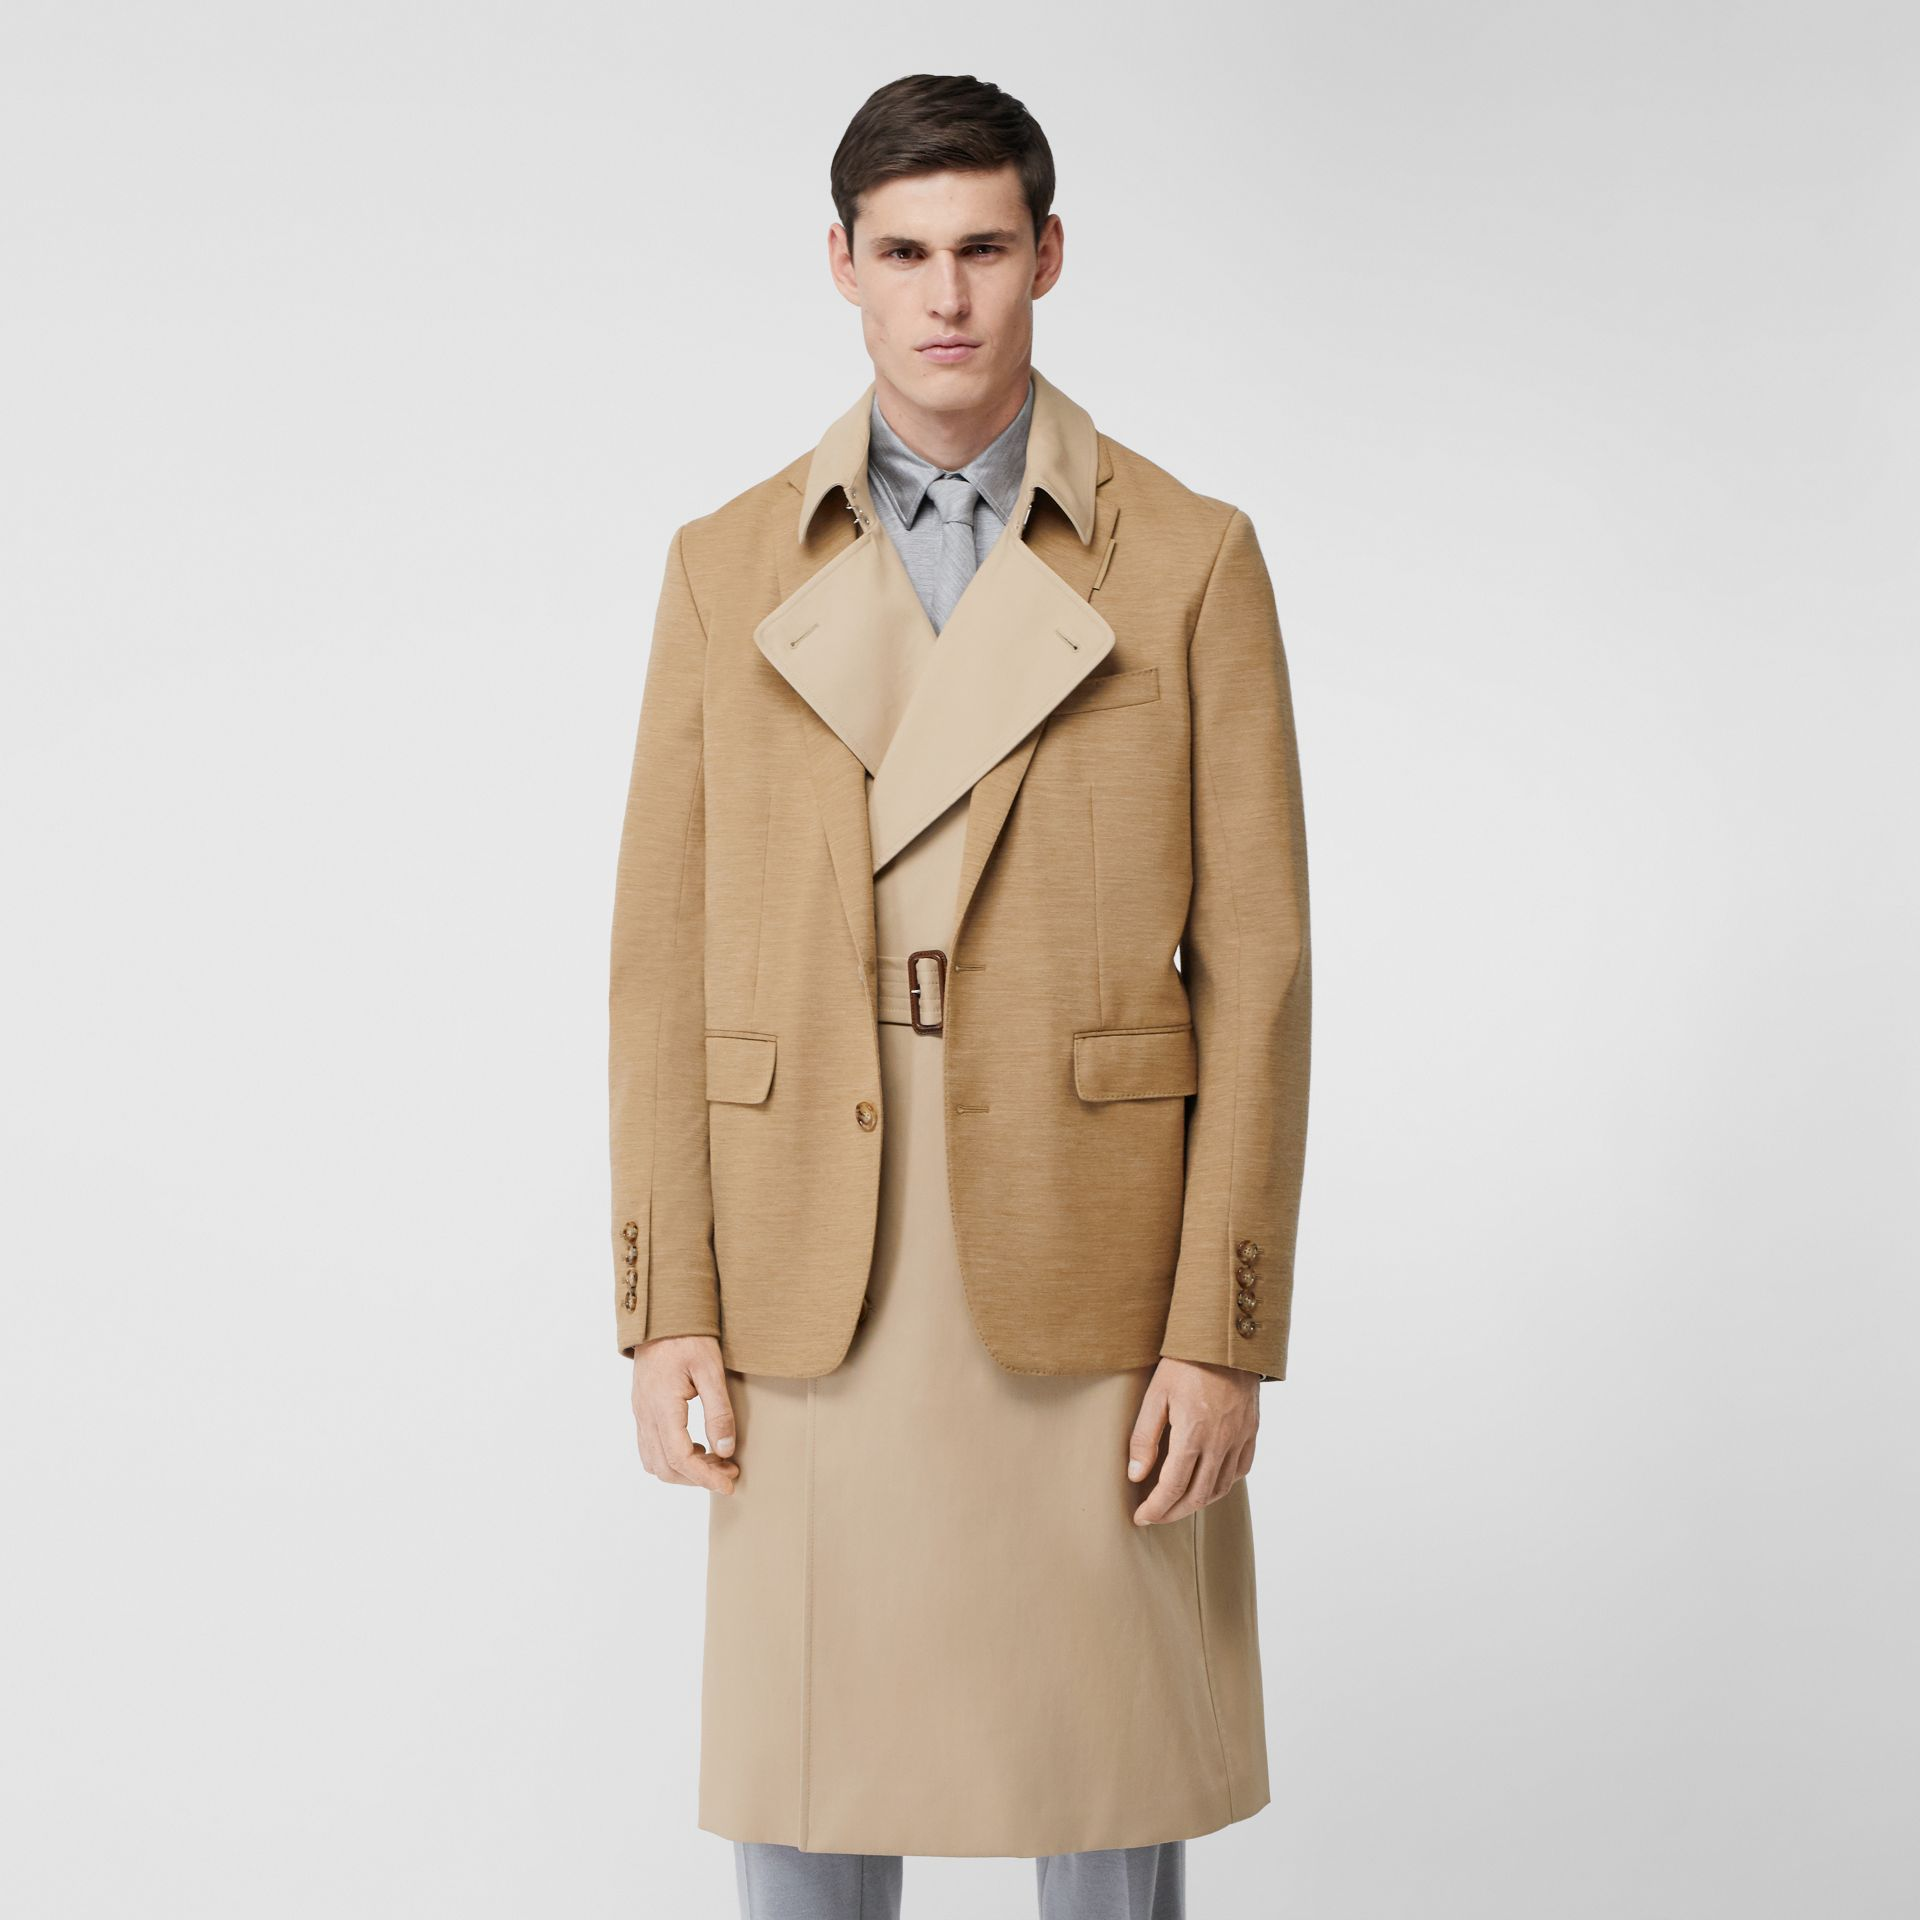 Blazer Detail Cotton Twill Reconstructed Trench Coat in Soft Fawn - Men | Burberry - gallery image 6